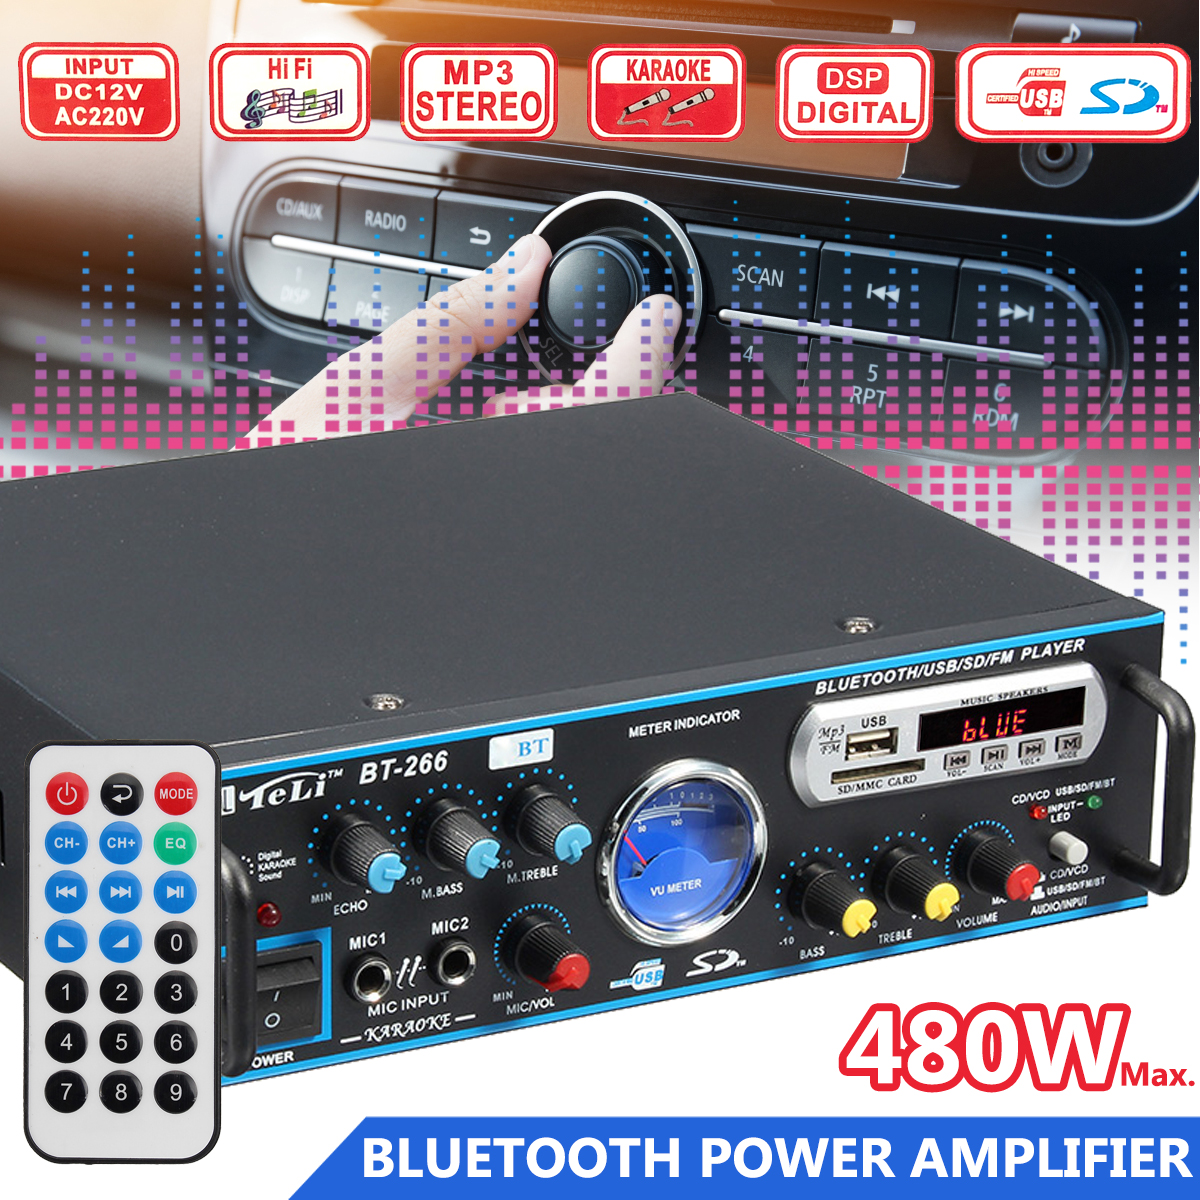 12V/ 220V HIFI Wireless Bluetooth Equalizer Car Amplifier Audio Stereo Power Amplifiers FM Car Home Theater Amplifiers 480W 800w universal bluetooth car auto stereo power amplifier car sound wireless amplifier 2 channel eq hifi stereo audio amplifiers